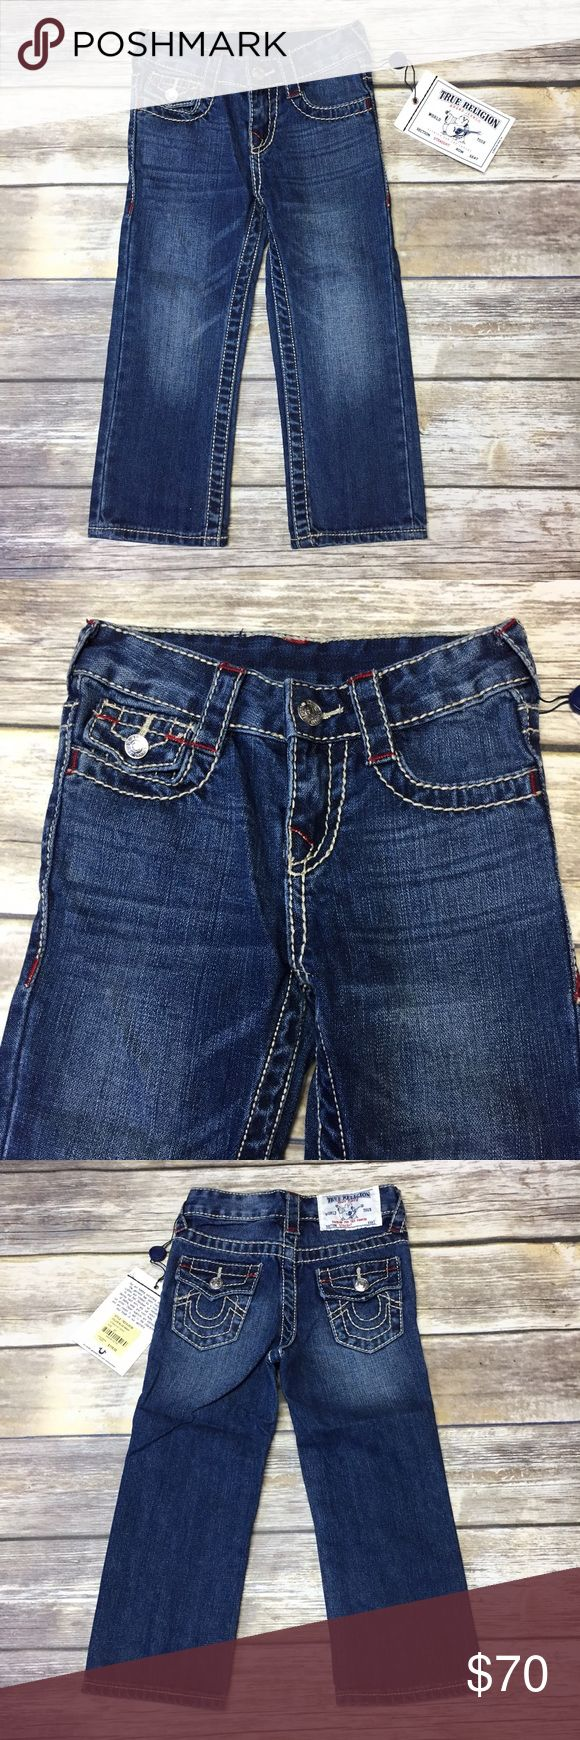 NET True Religion Jeans Boys new with tags True Religion blue wash straight leg jeans. True Religion Bottoms Jeans